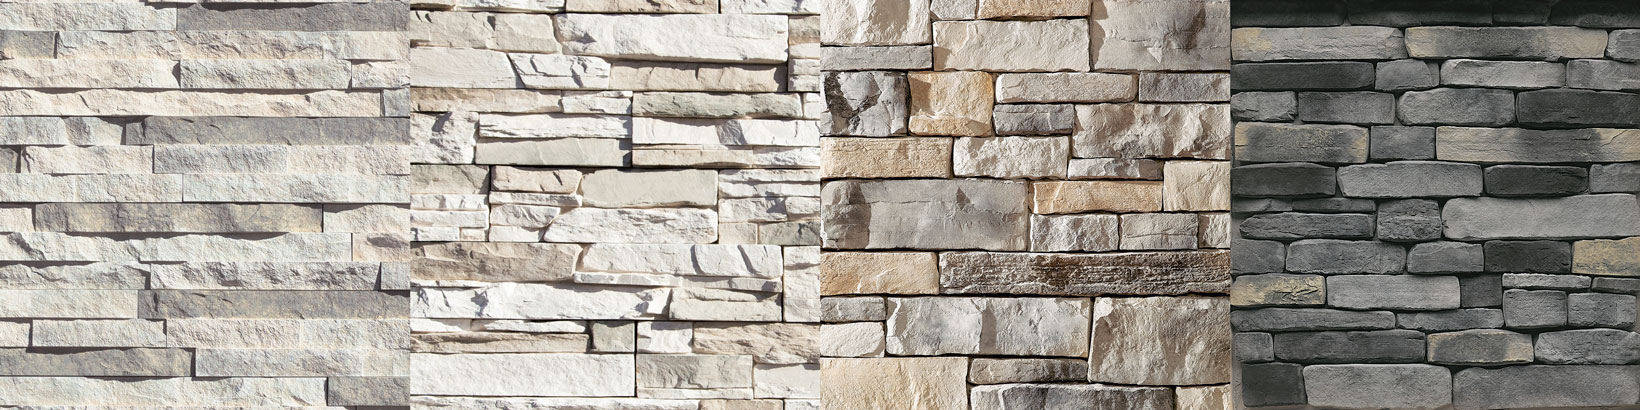 Manufactured Stone Veneer Product Banner